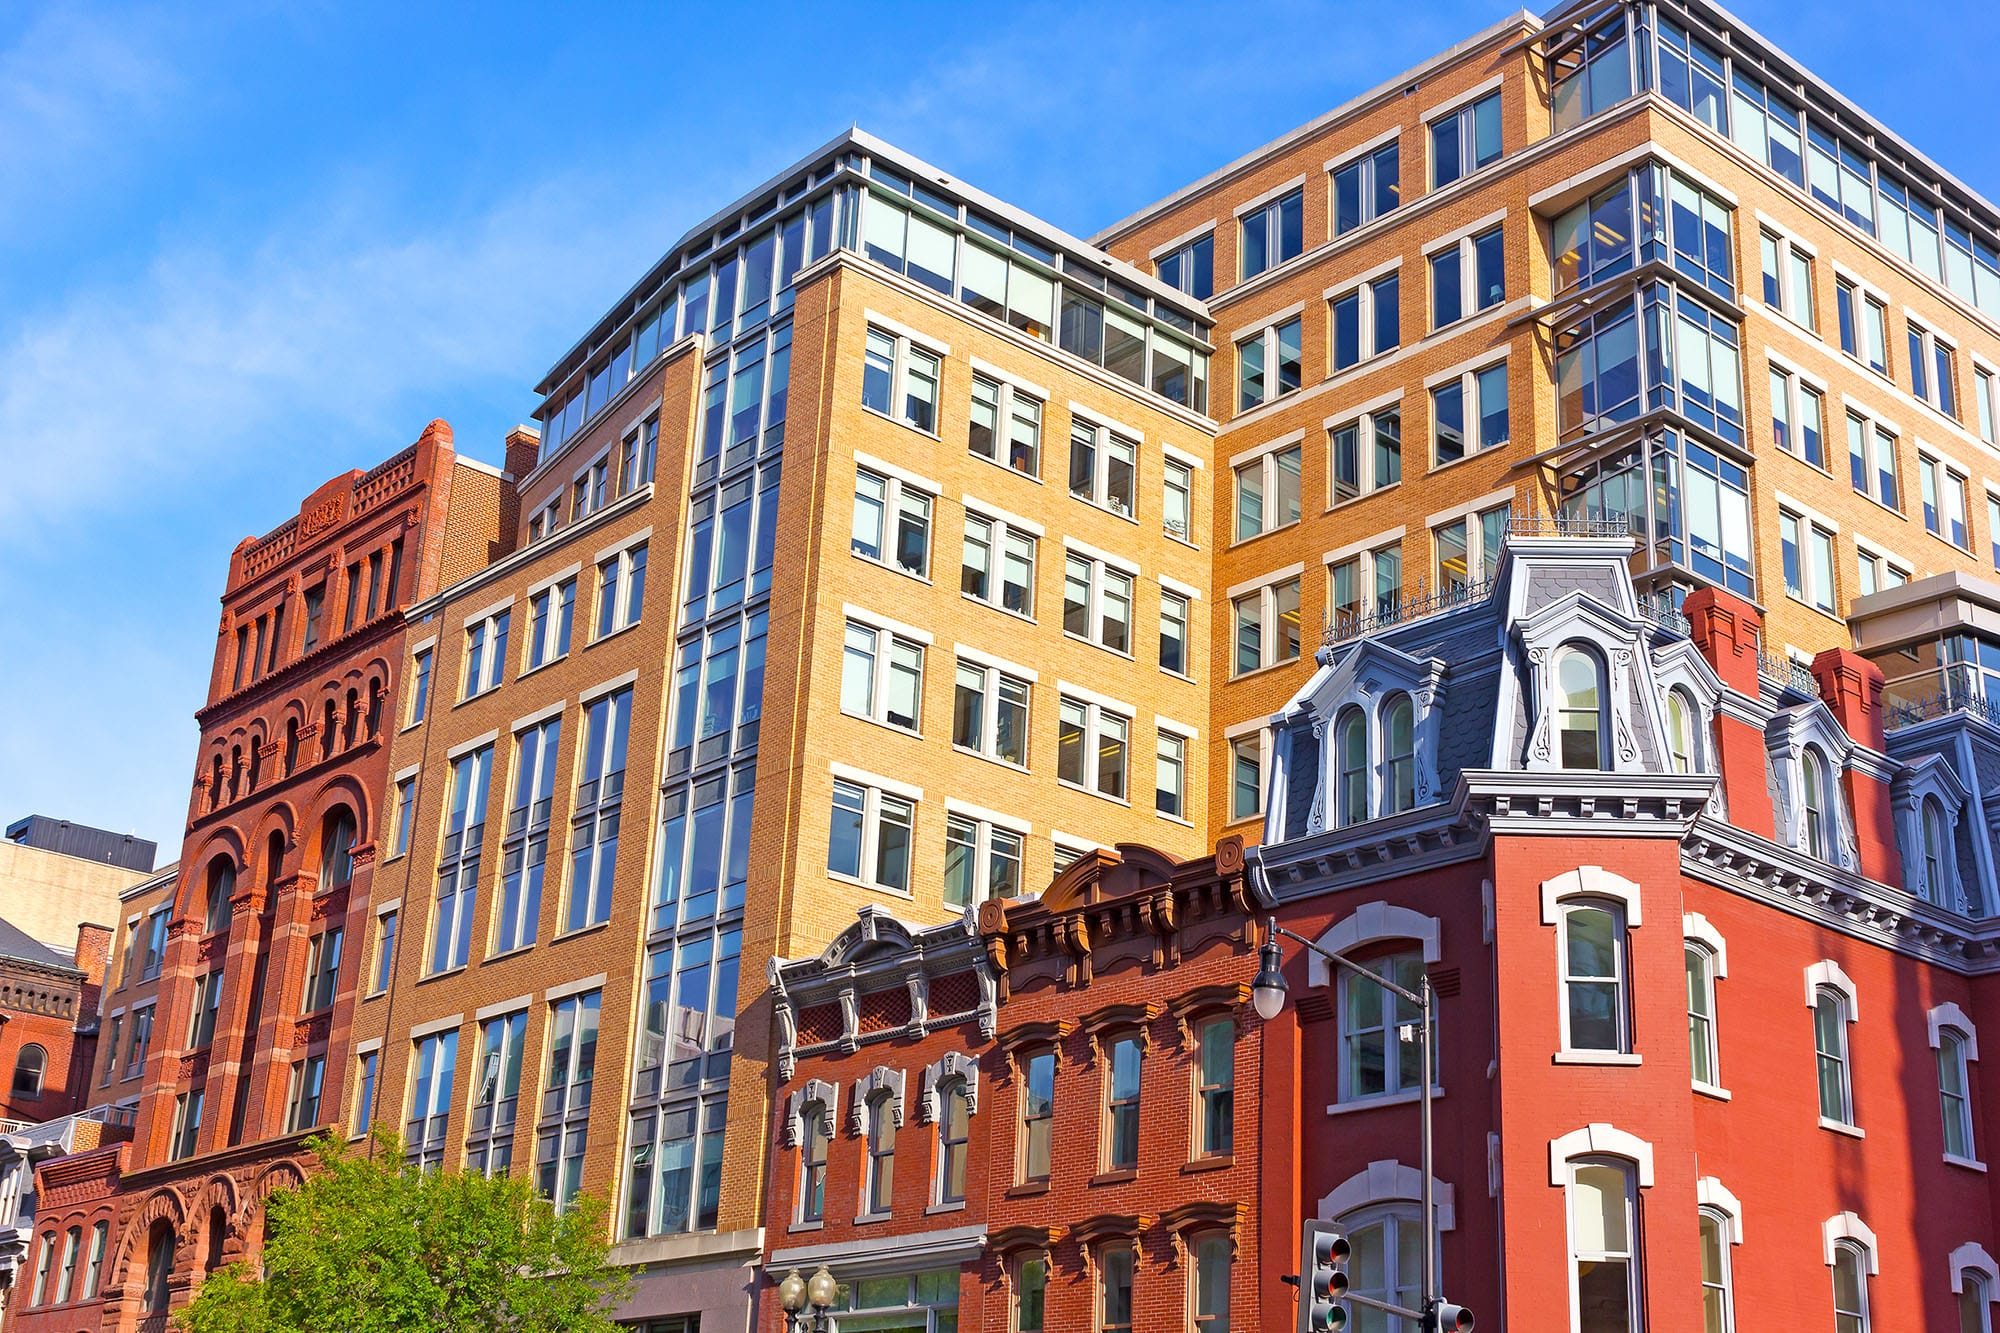 D.C.-Based Companies Are Fueling the Housing Market